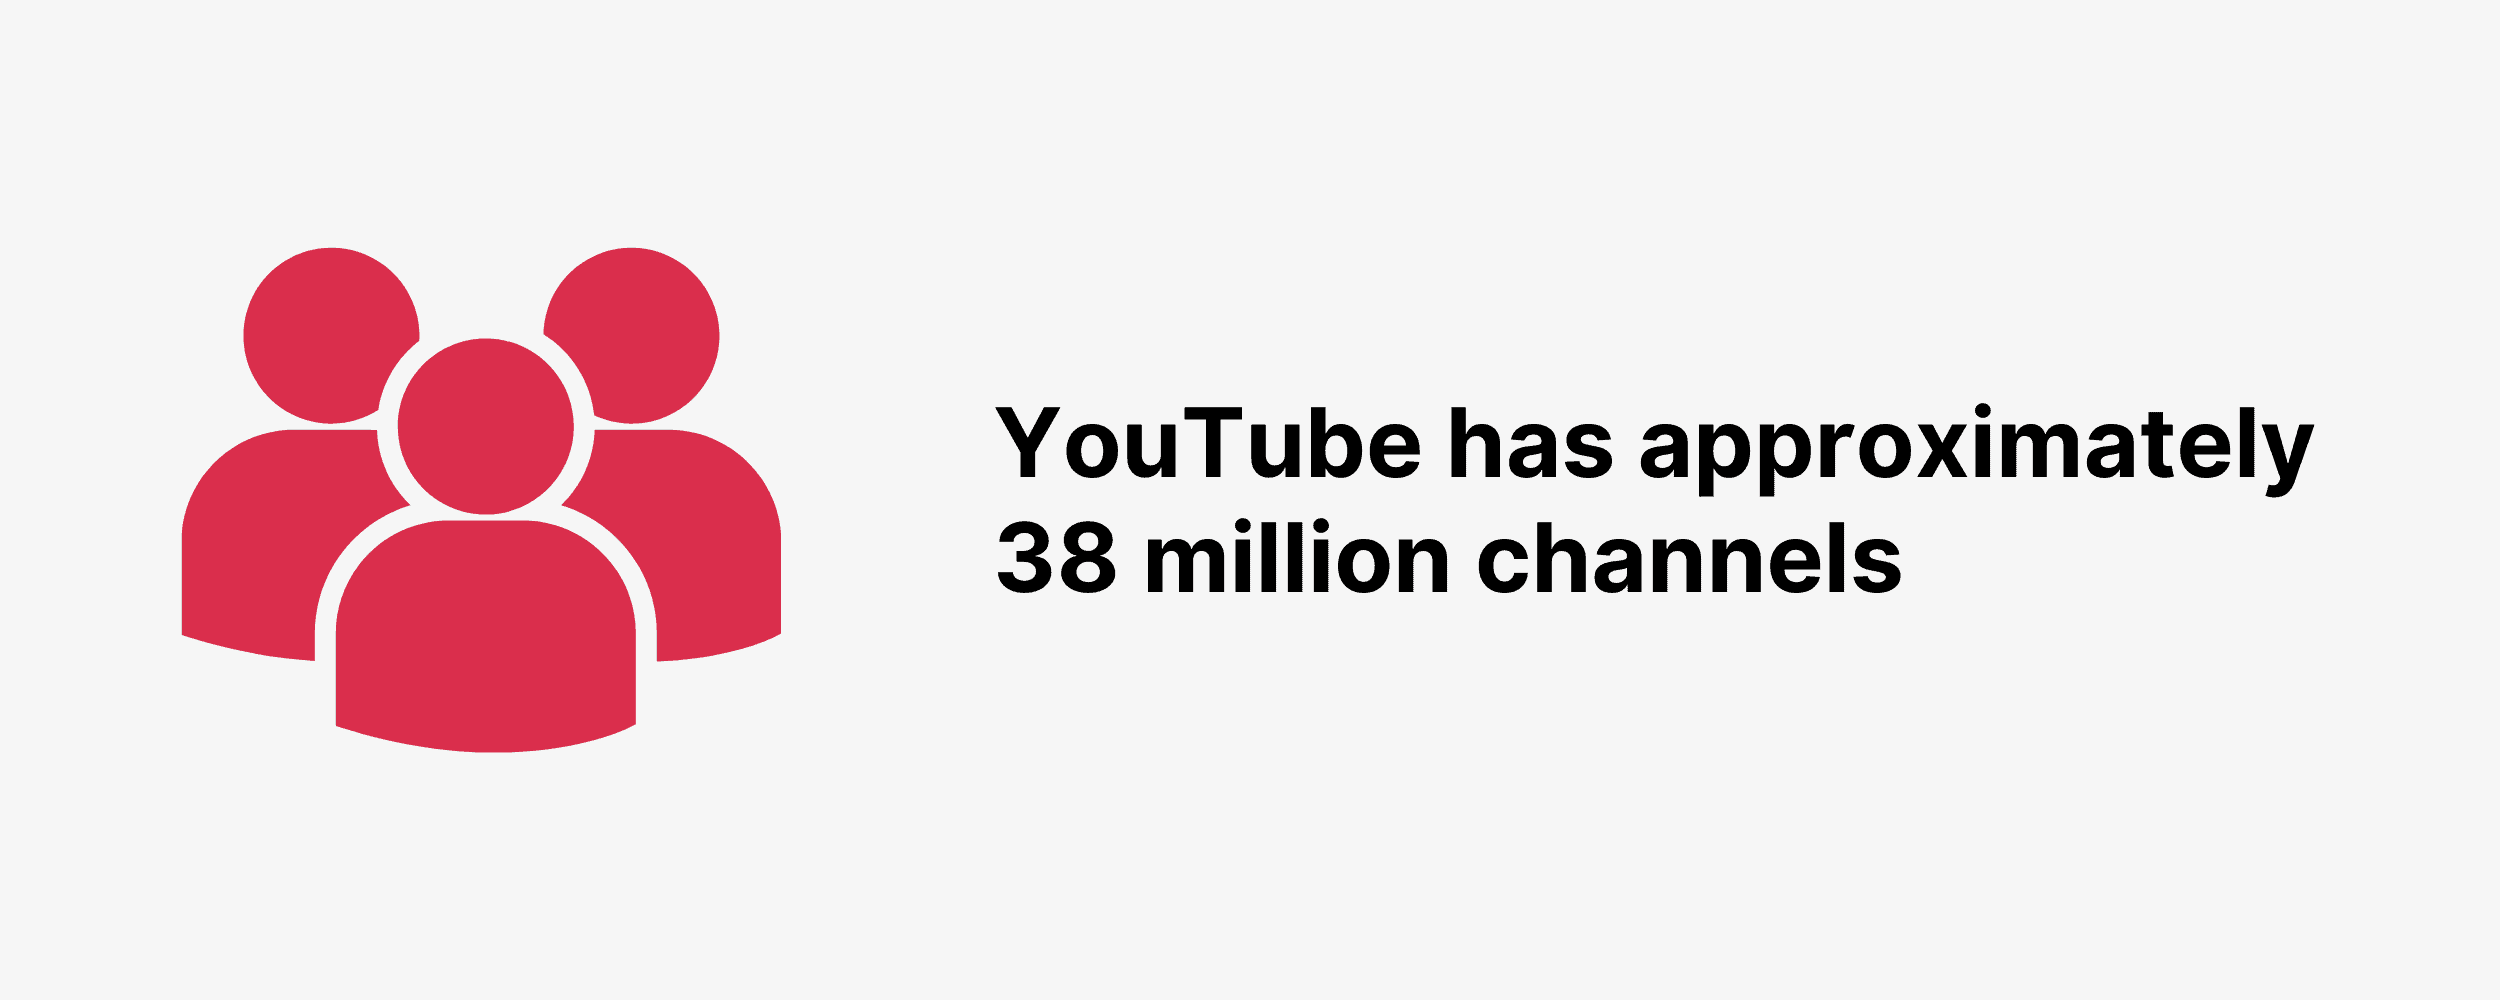 YouTube has approximately 38 million channels